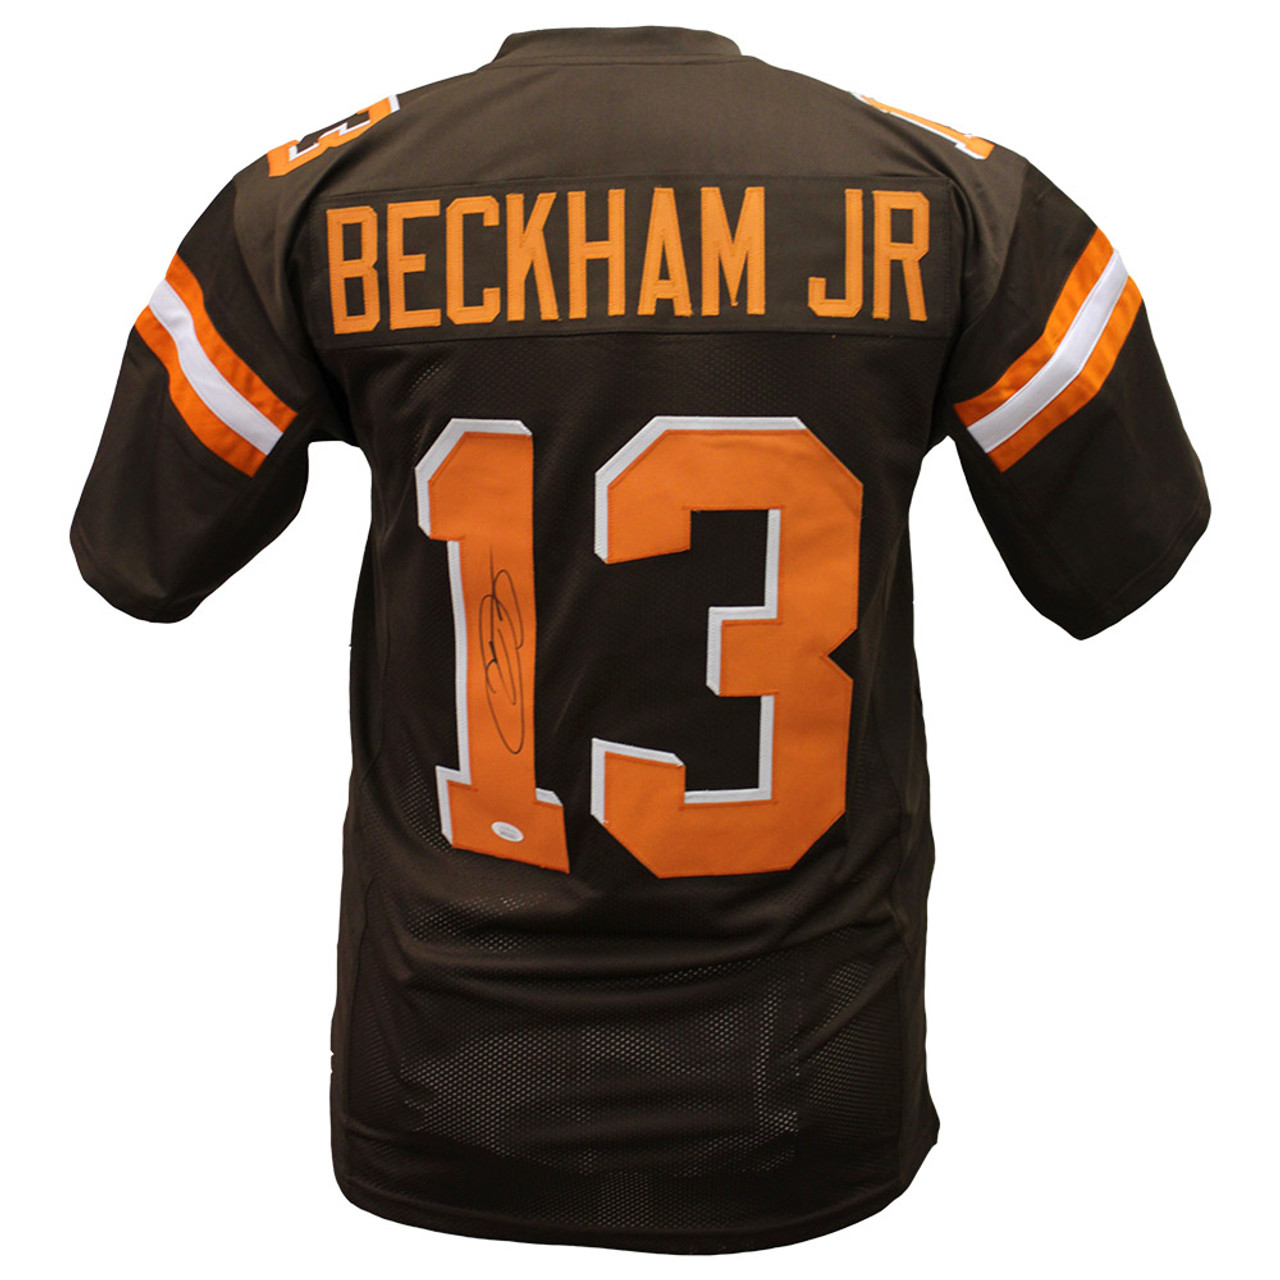 cheap for discount b33db 14f2f Odell Beckham Jr. Cleveland Browns Autographed Custom Jersey - JSA Authentic